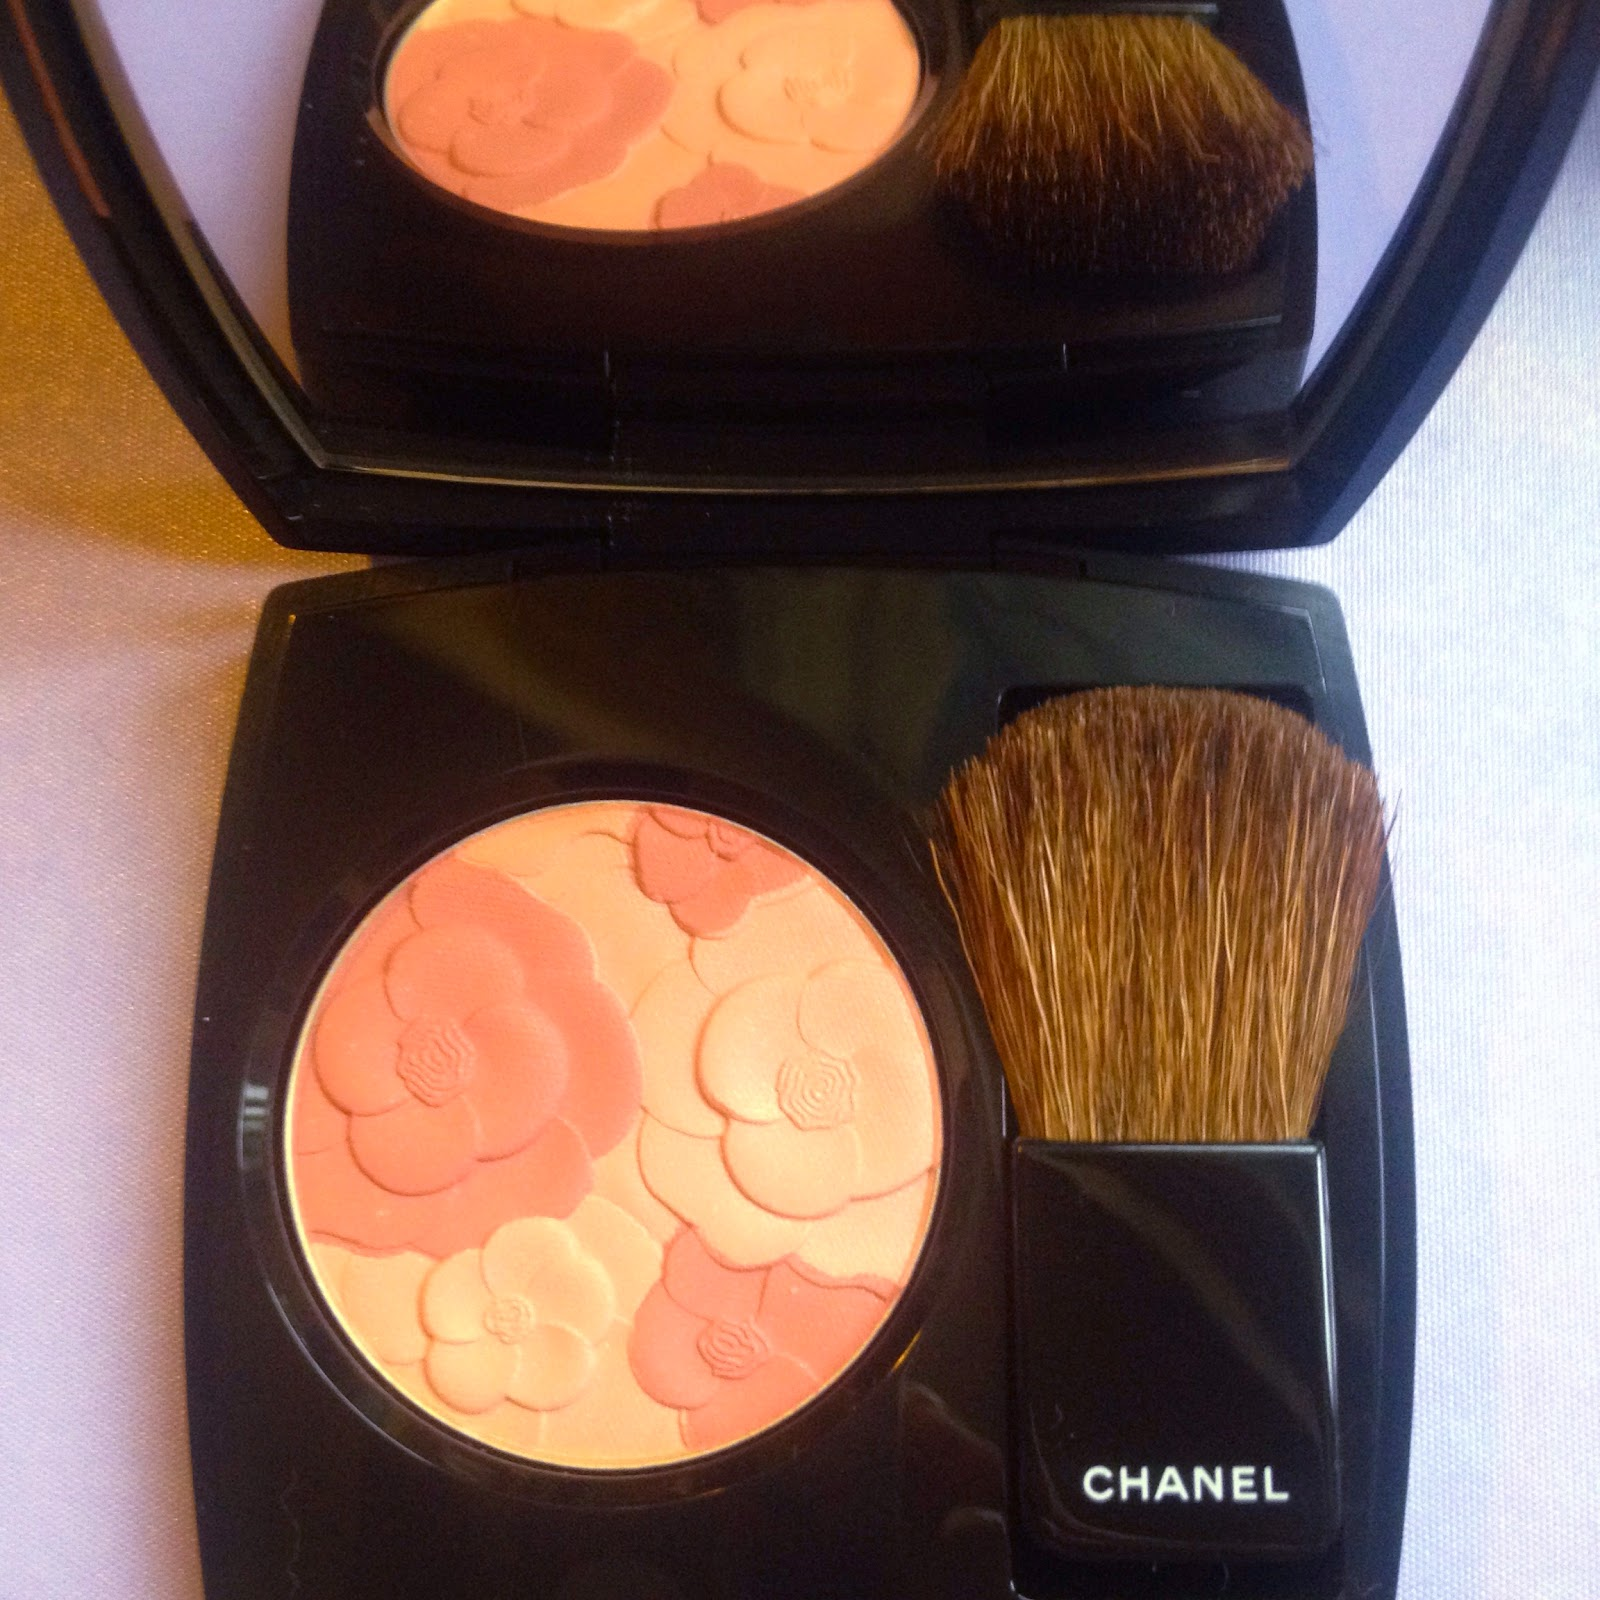 Jardin de chanel blush cam lia ros for Jardin de chanel blush 2015 kaufen